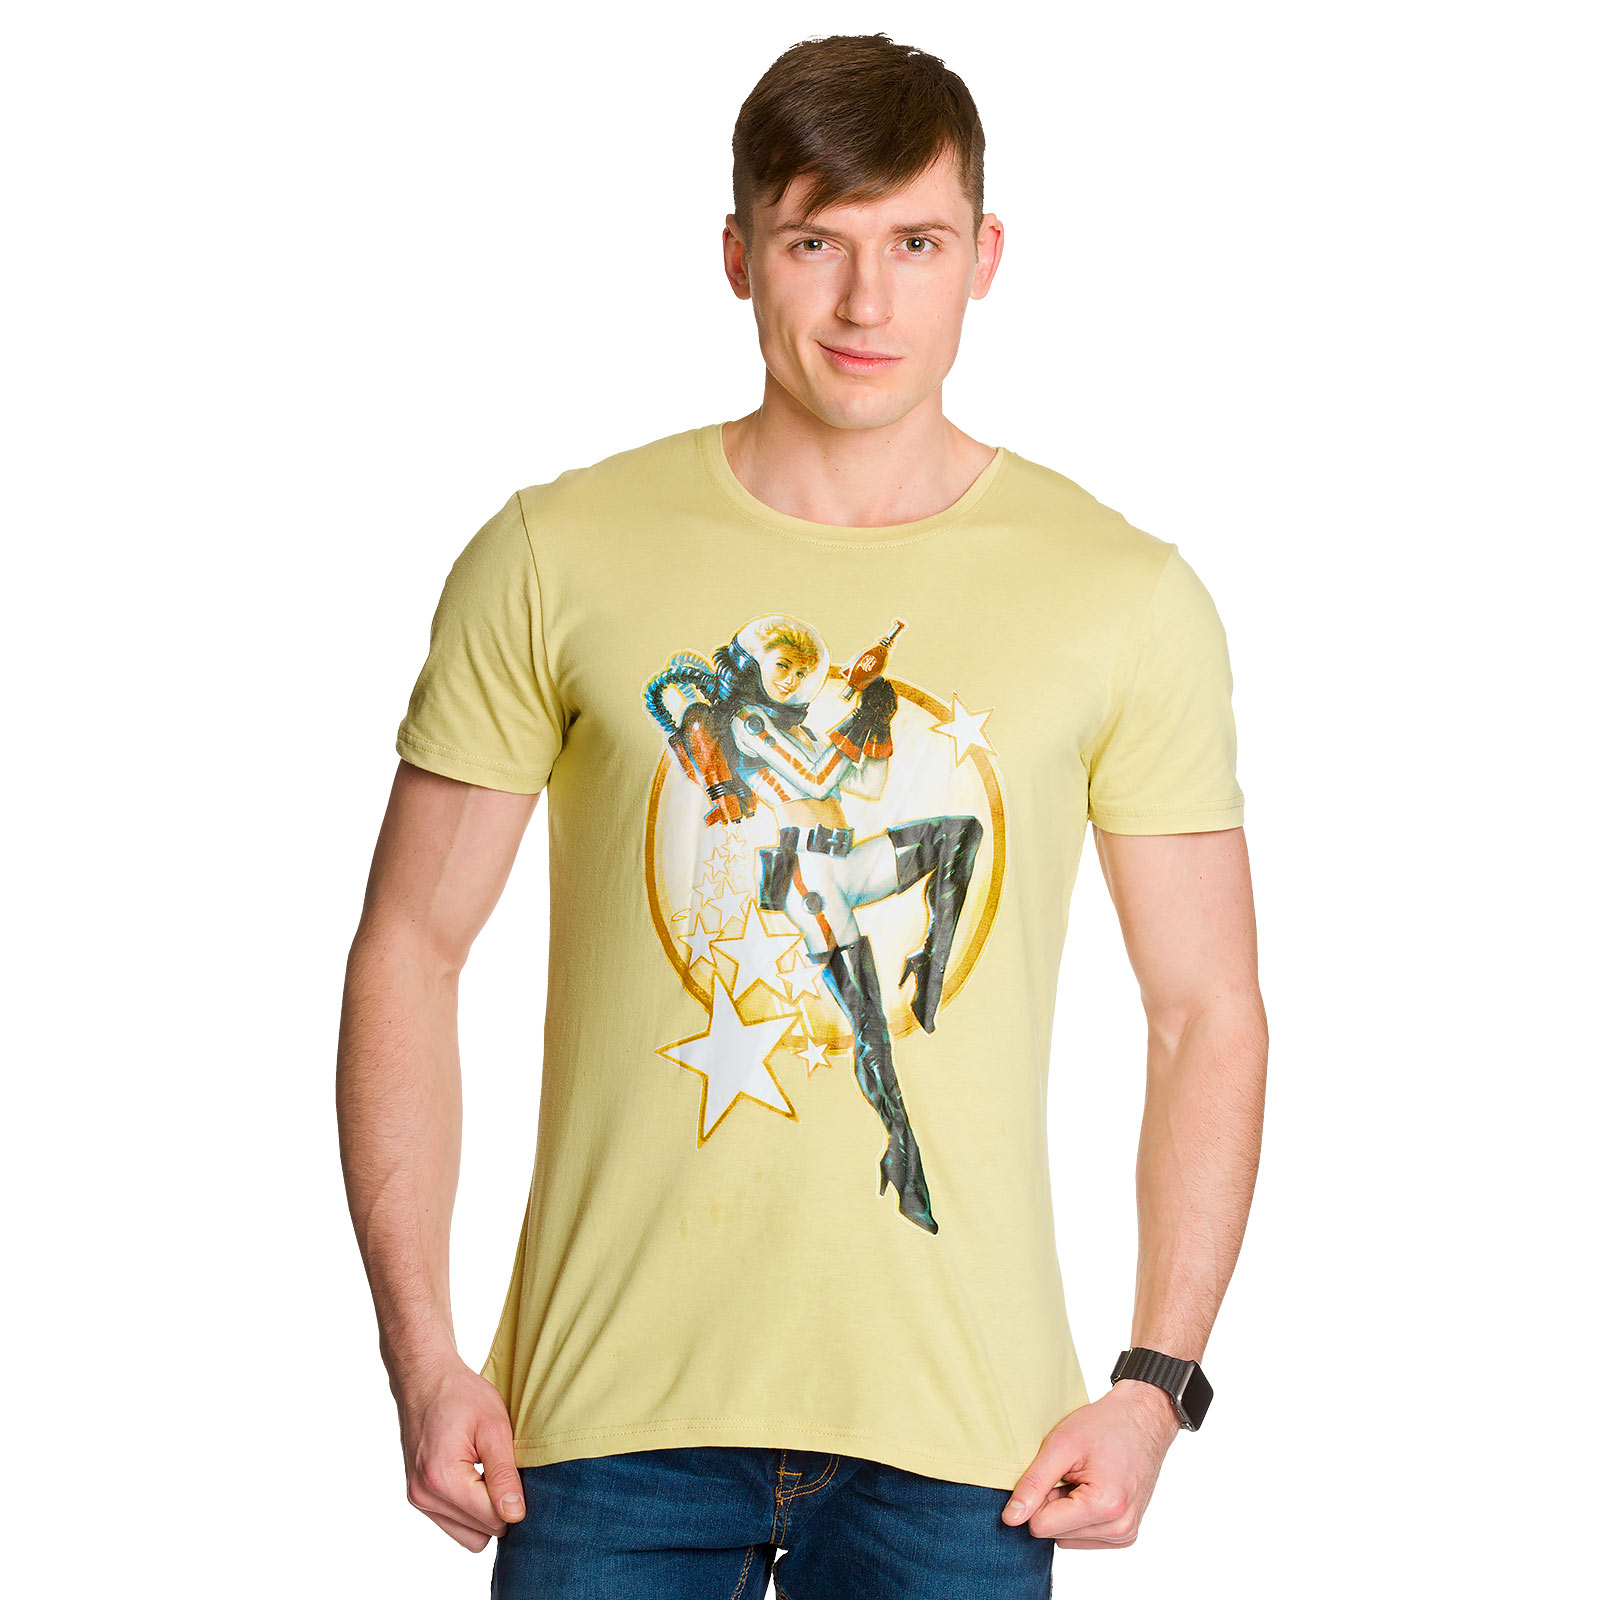 Fallout - Nuka Cola Pin-up T-Shirt beige